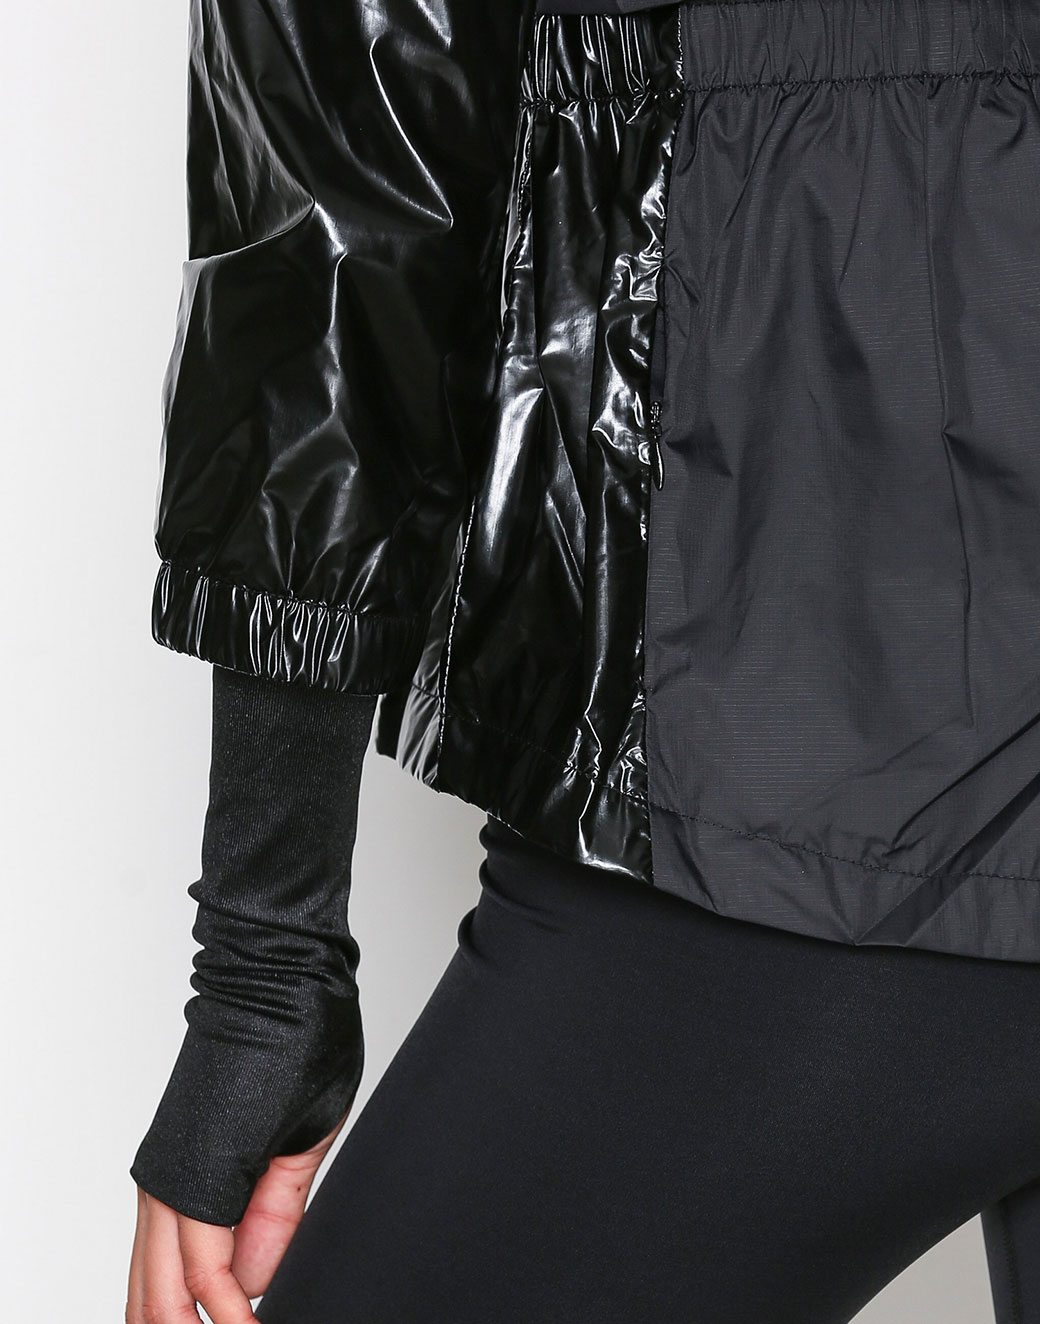 Fashionablefit Jacket 6